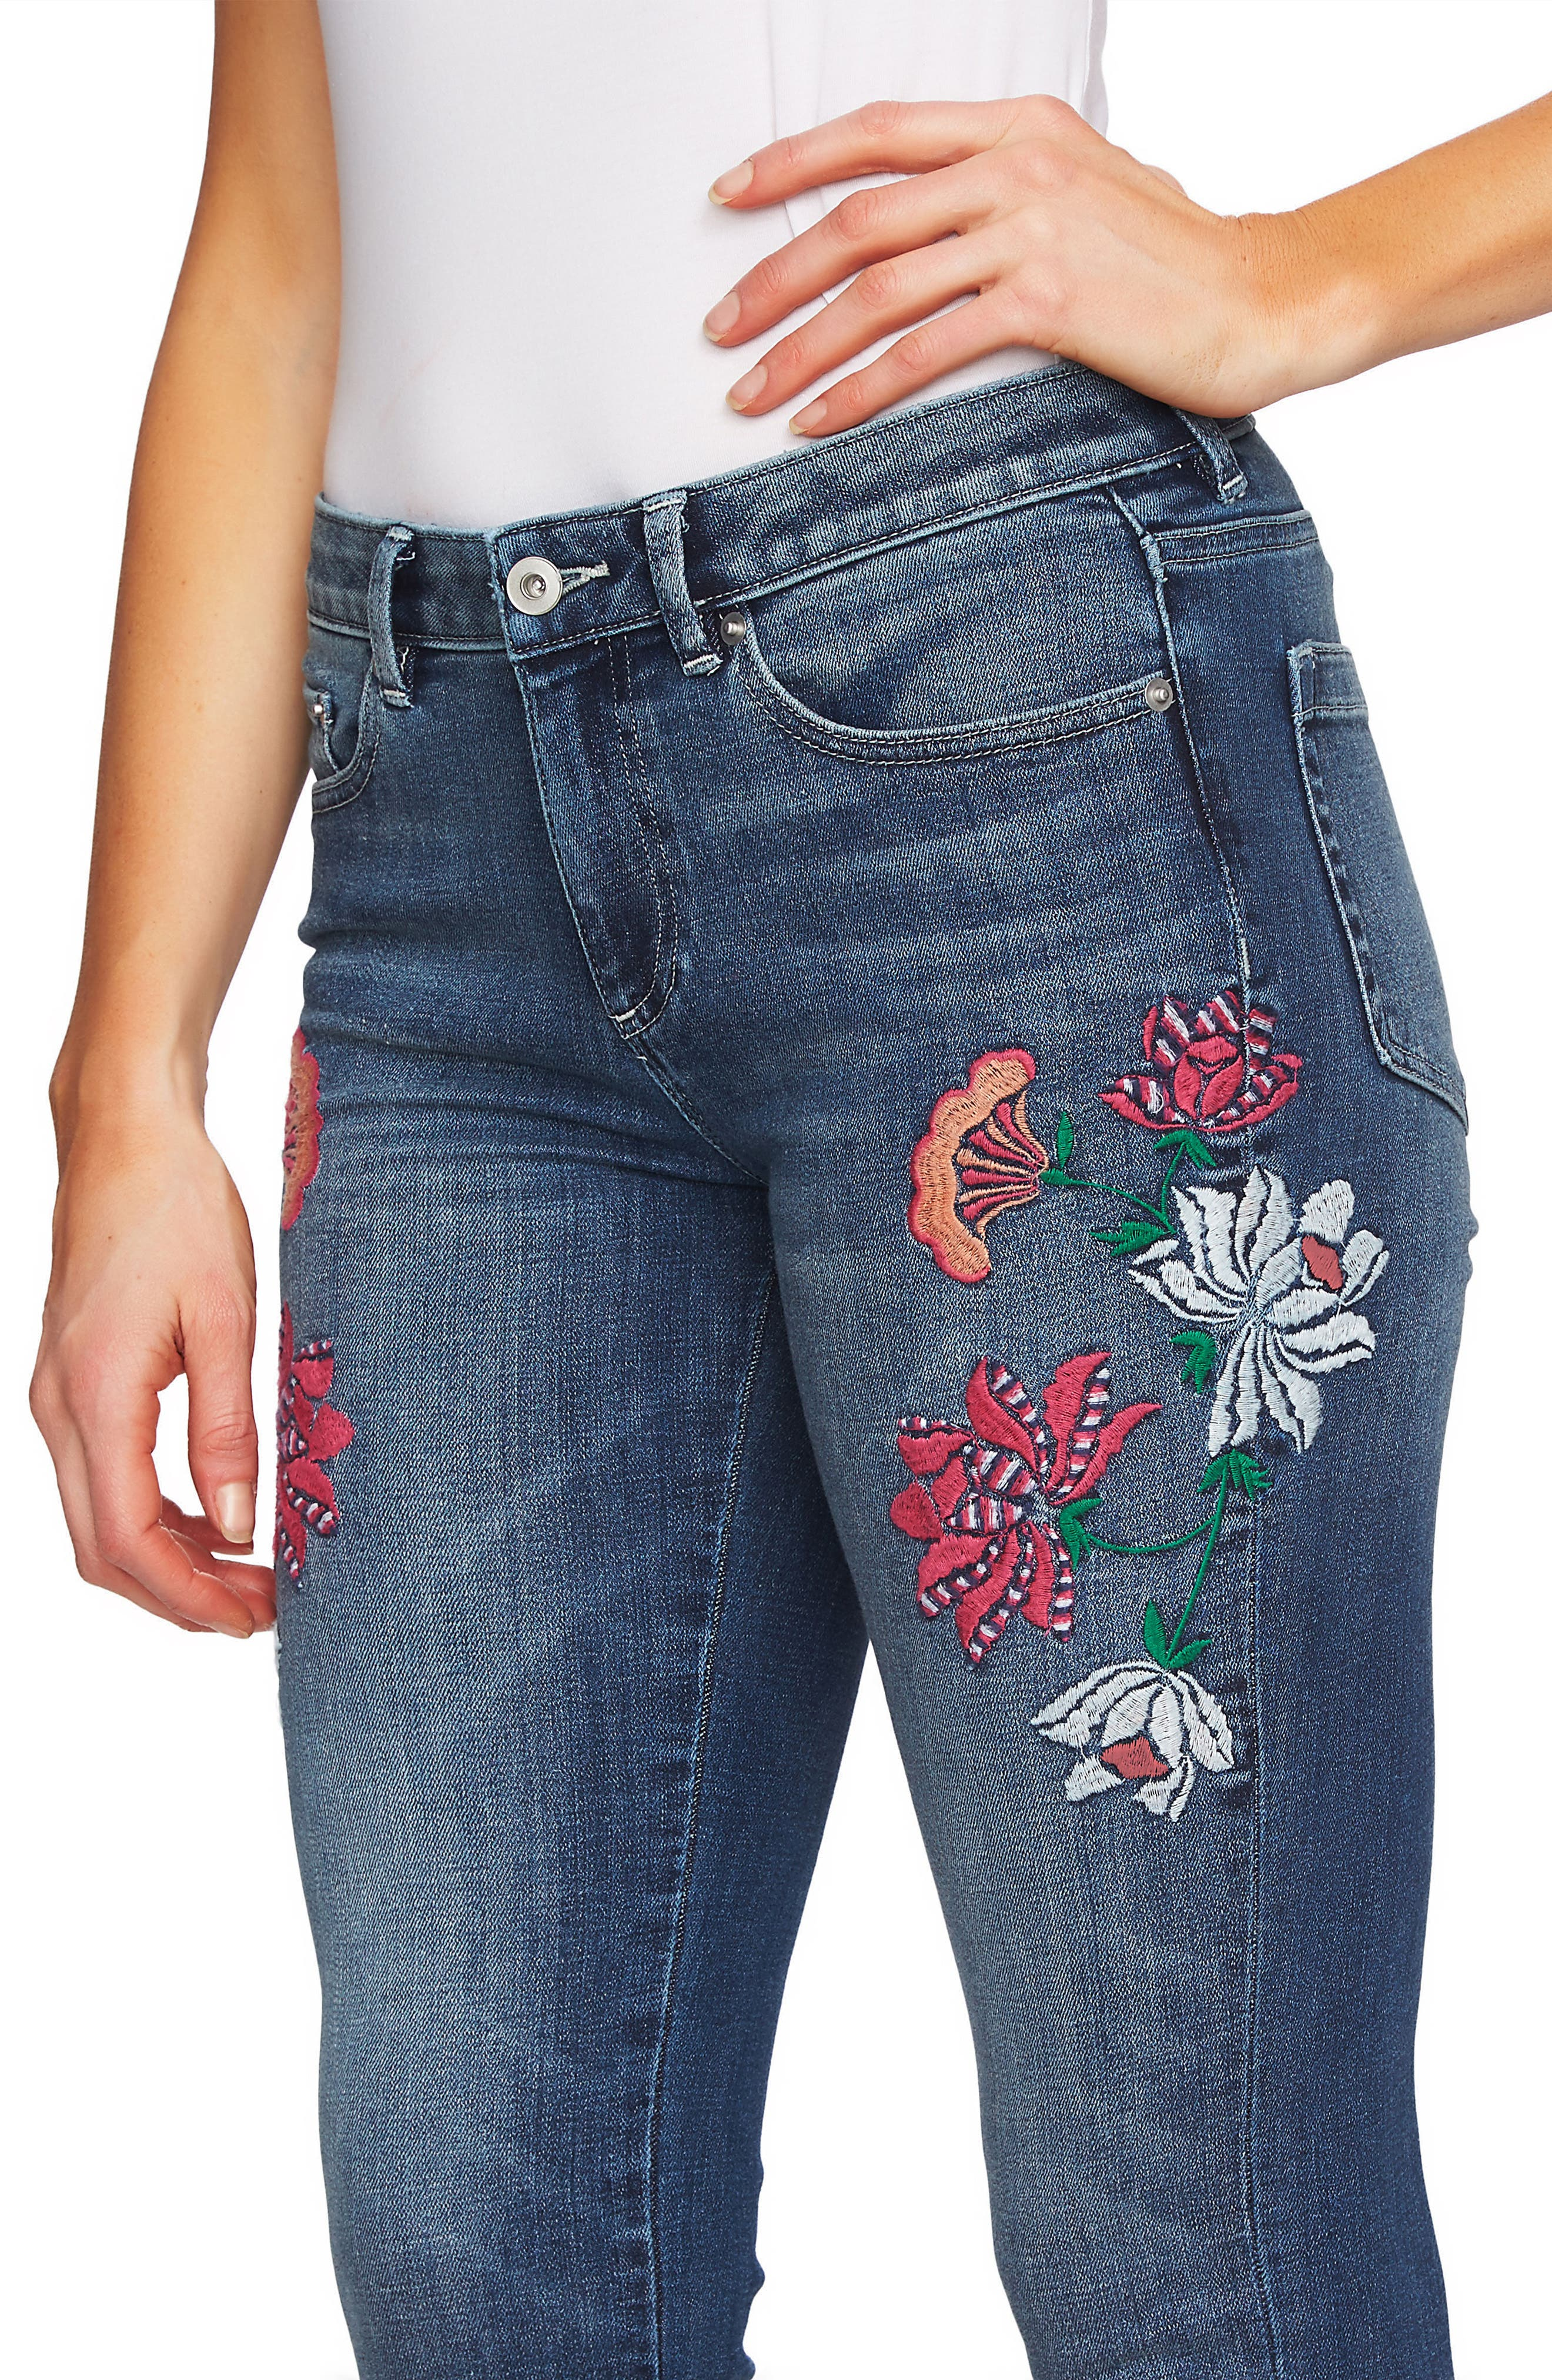 Floral Embroidery Skinny Jeans,                             Alternate thumbnail 4, color,                             464